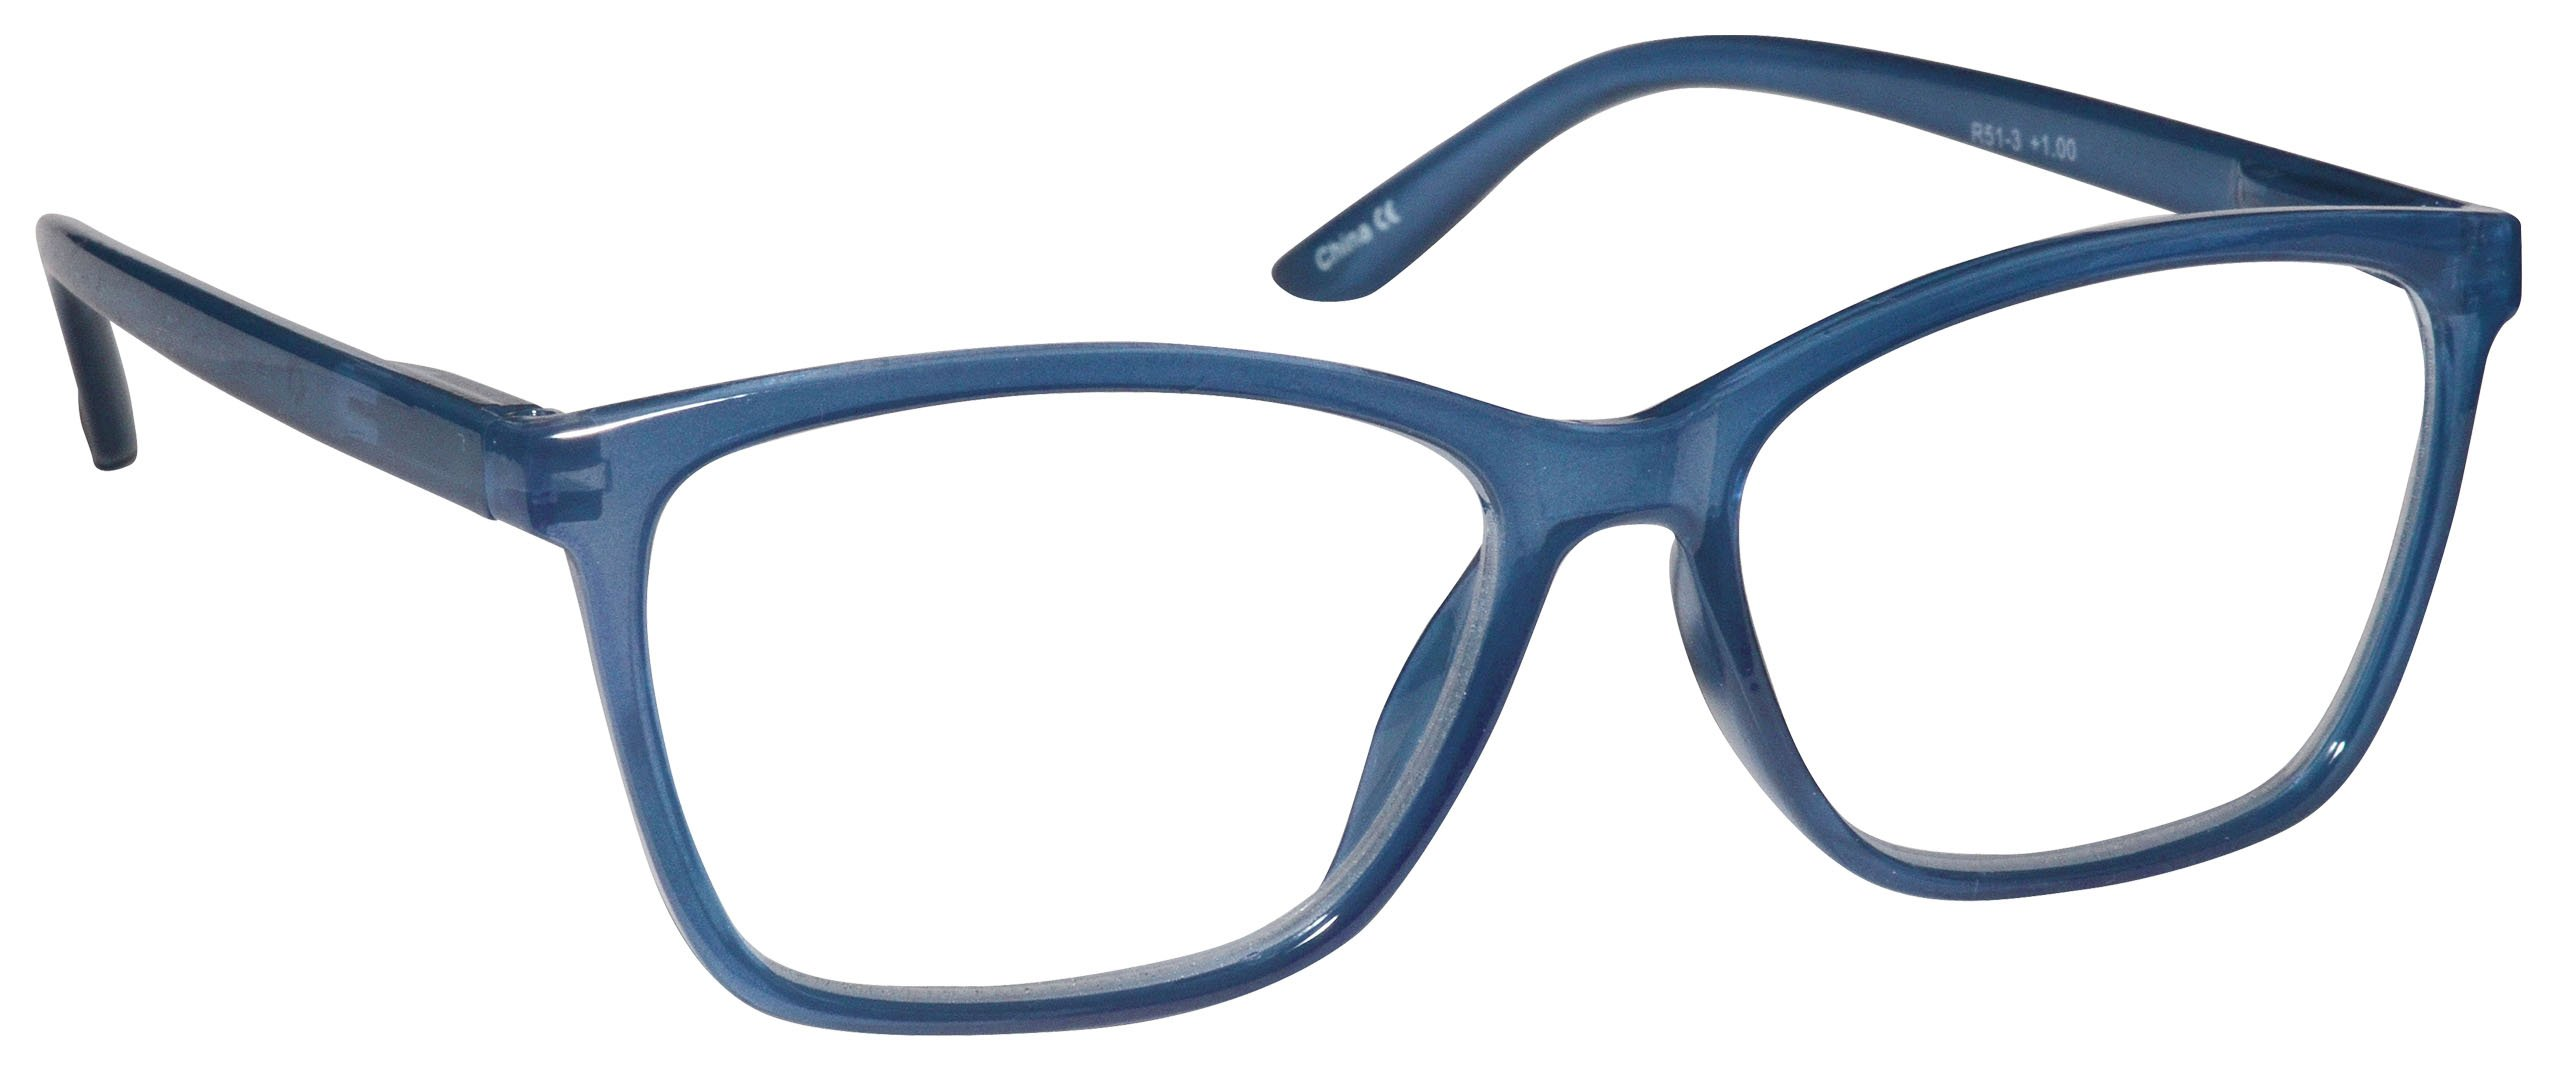 c645a815ac6 The Reading Glasses Company Bright Blue Readers Large Designer Style Mens  Spring Hinges R51-3